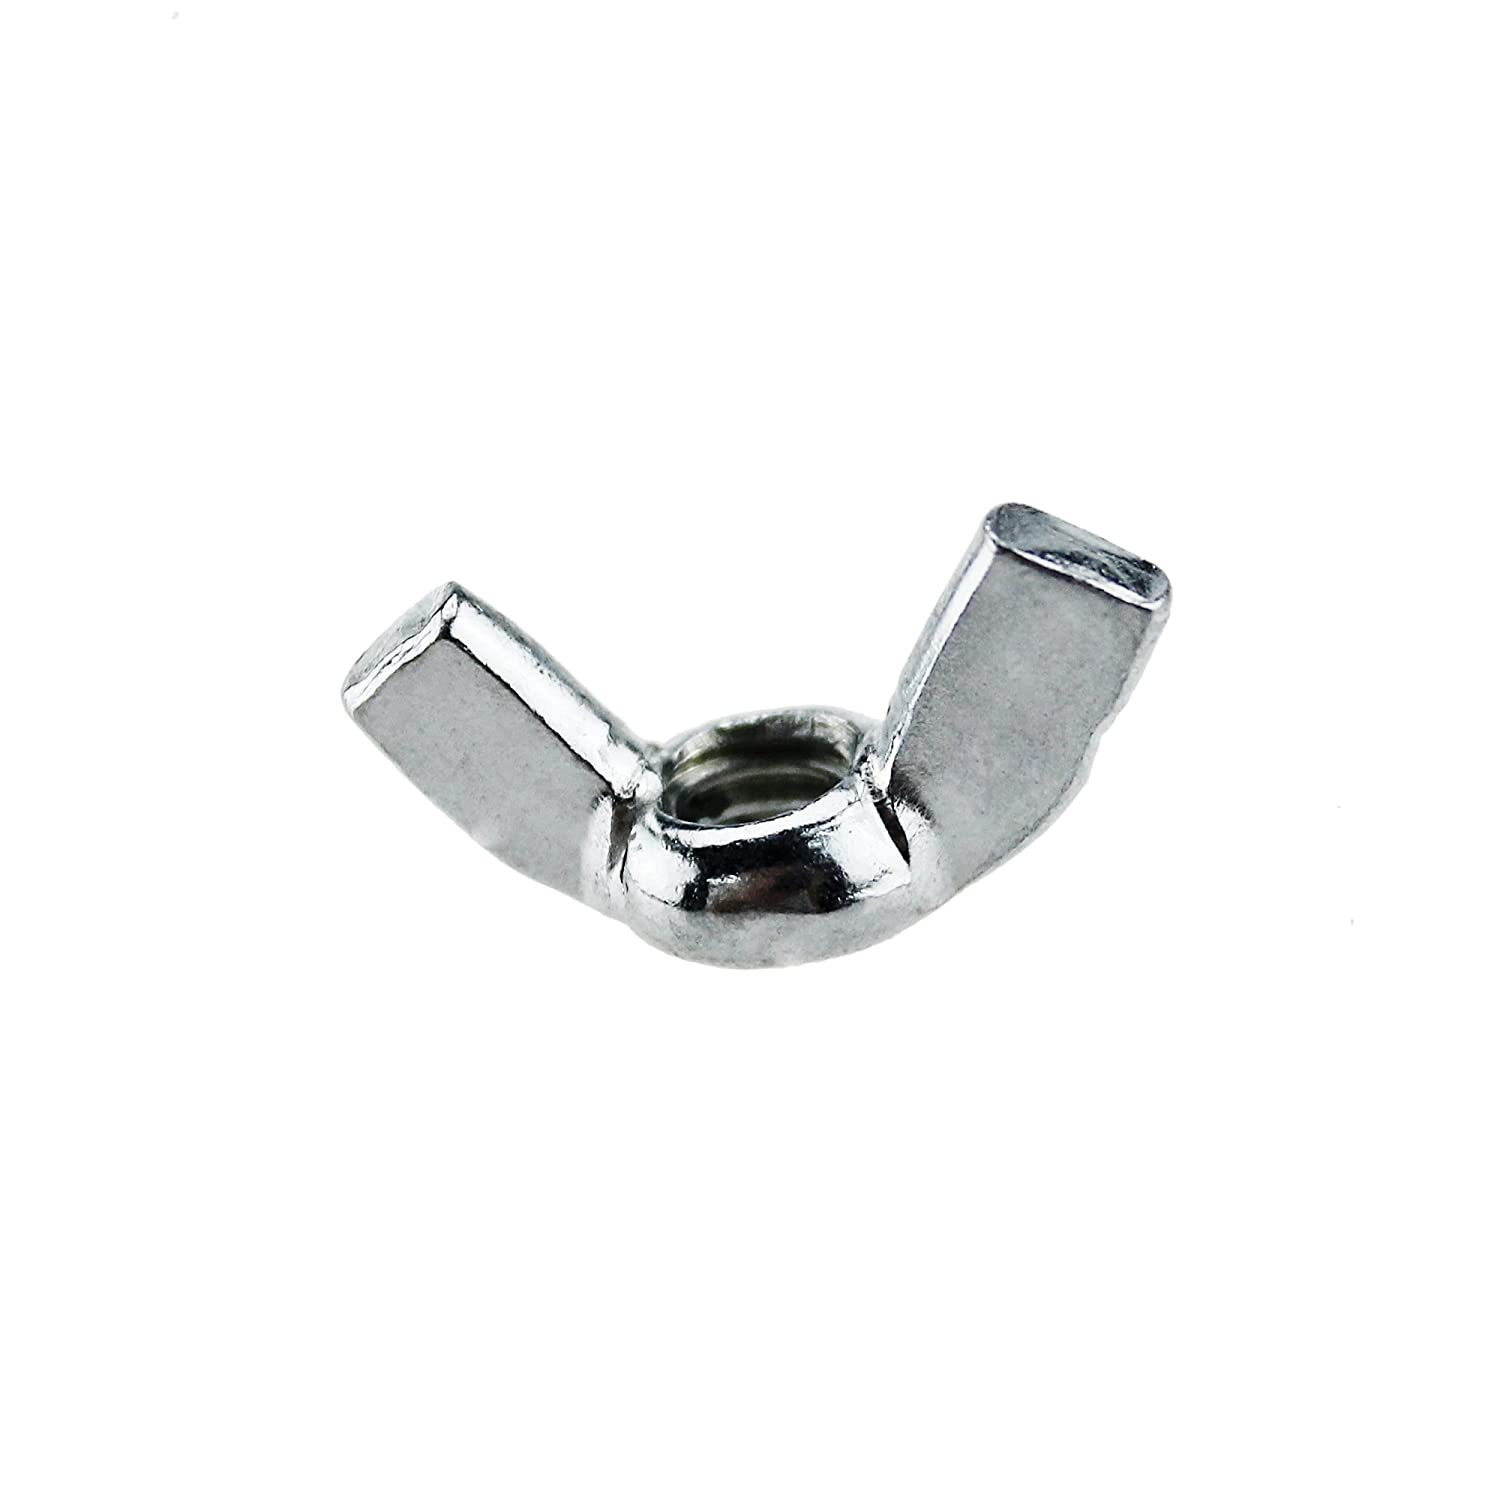 Iztoss Industrial Carbon Steel Inches Twist Tighten Eye Wing Nut Threaded Thumb Butterfly Claw Nuts 1//4-20 50PCS